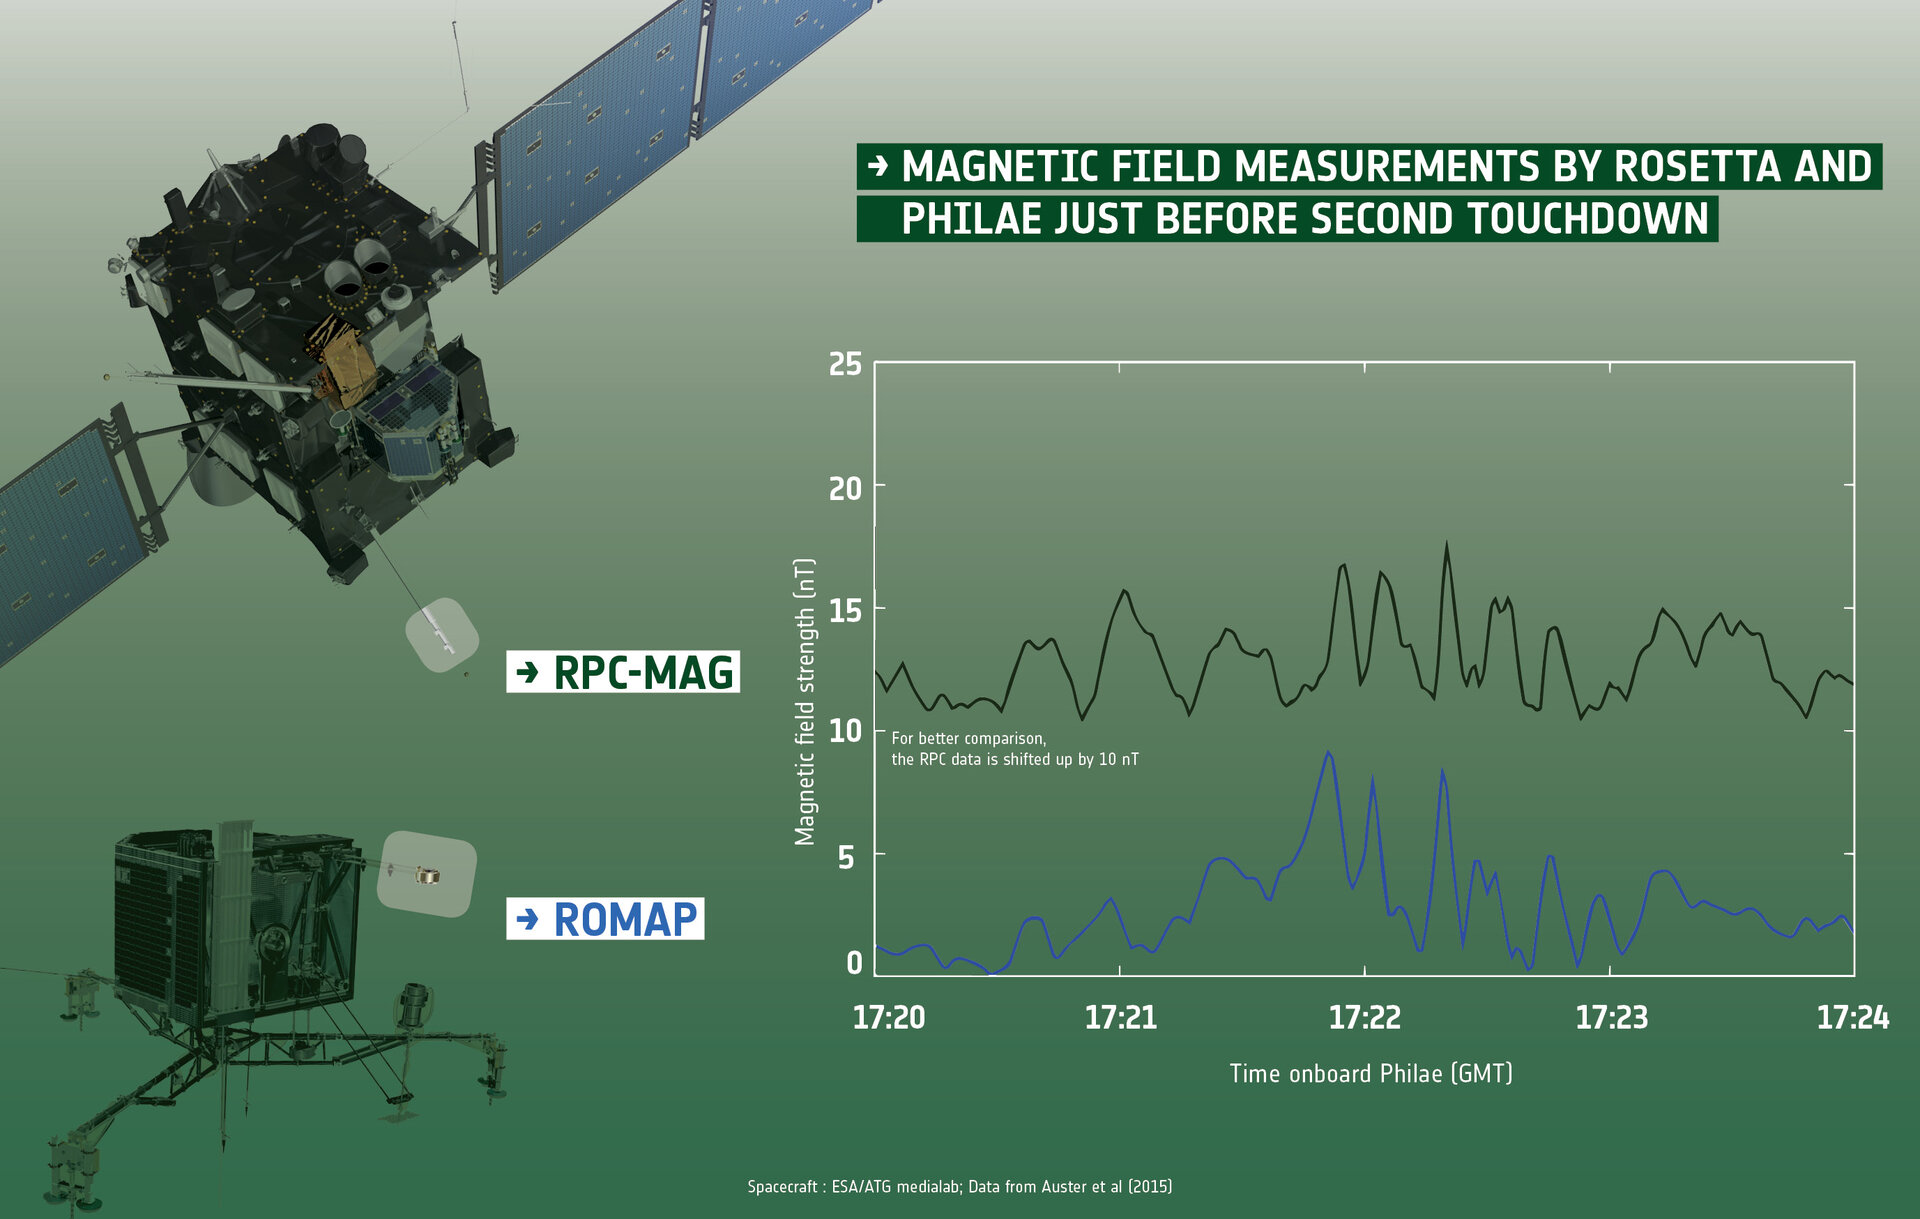 Rosetta and Philae investigate magnetic properties of Comet 67P/C-G